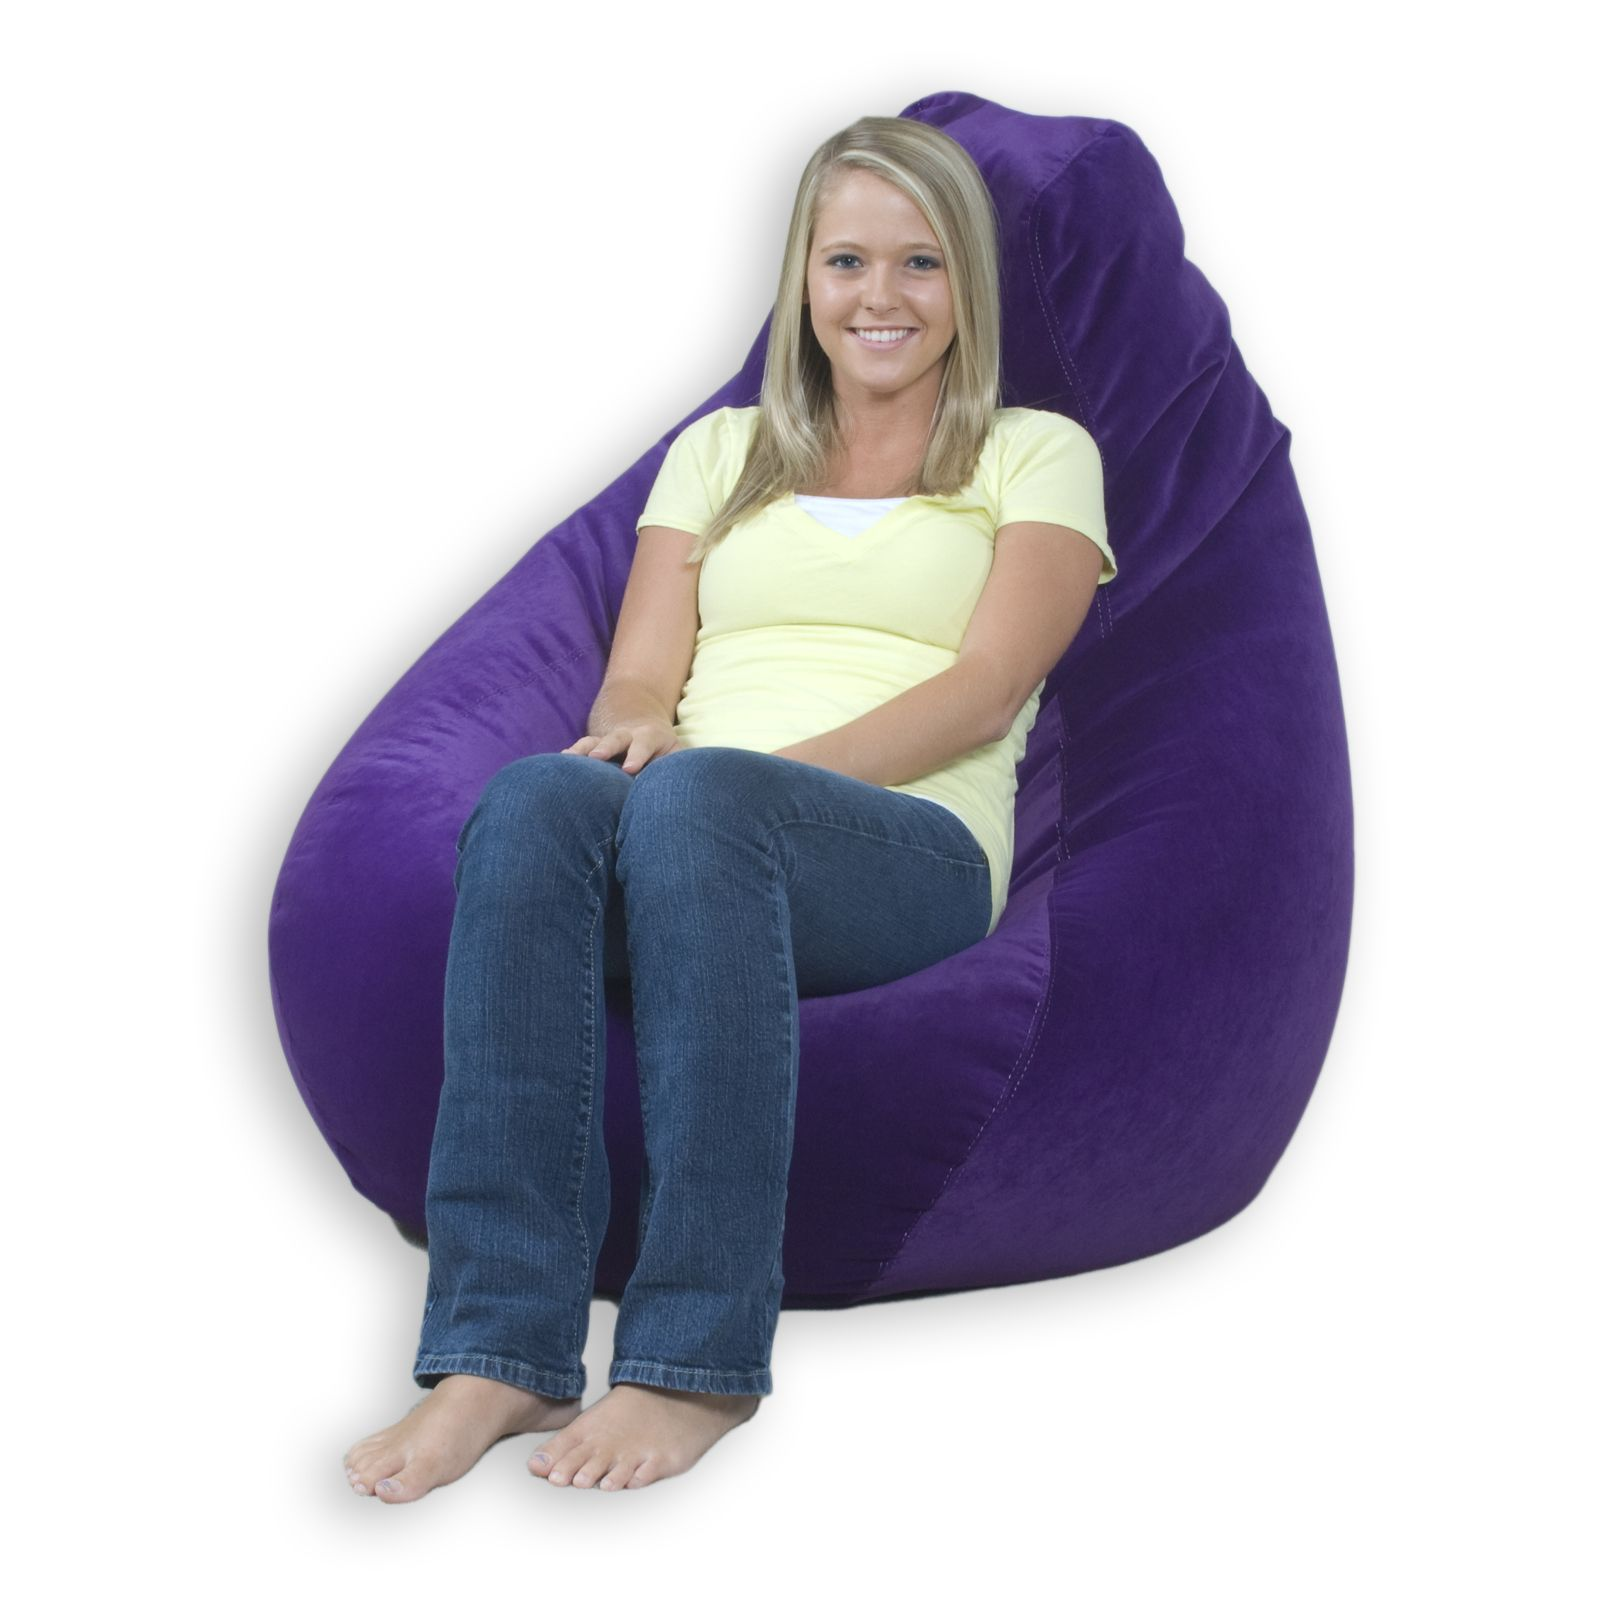 Wondrous Extra Large Bean Bag Covers Bean Bag Chairs For Adults Uwap Interior Chair Design Uwaporg